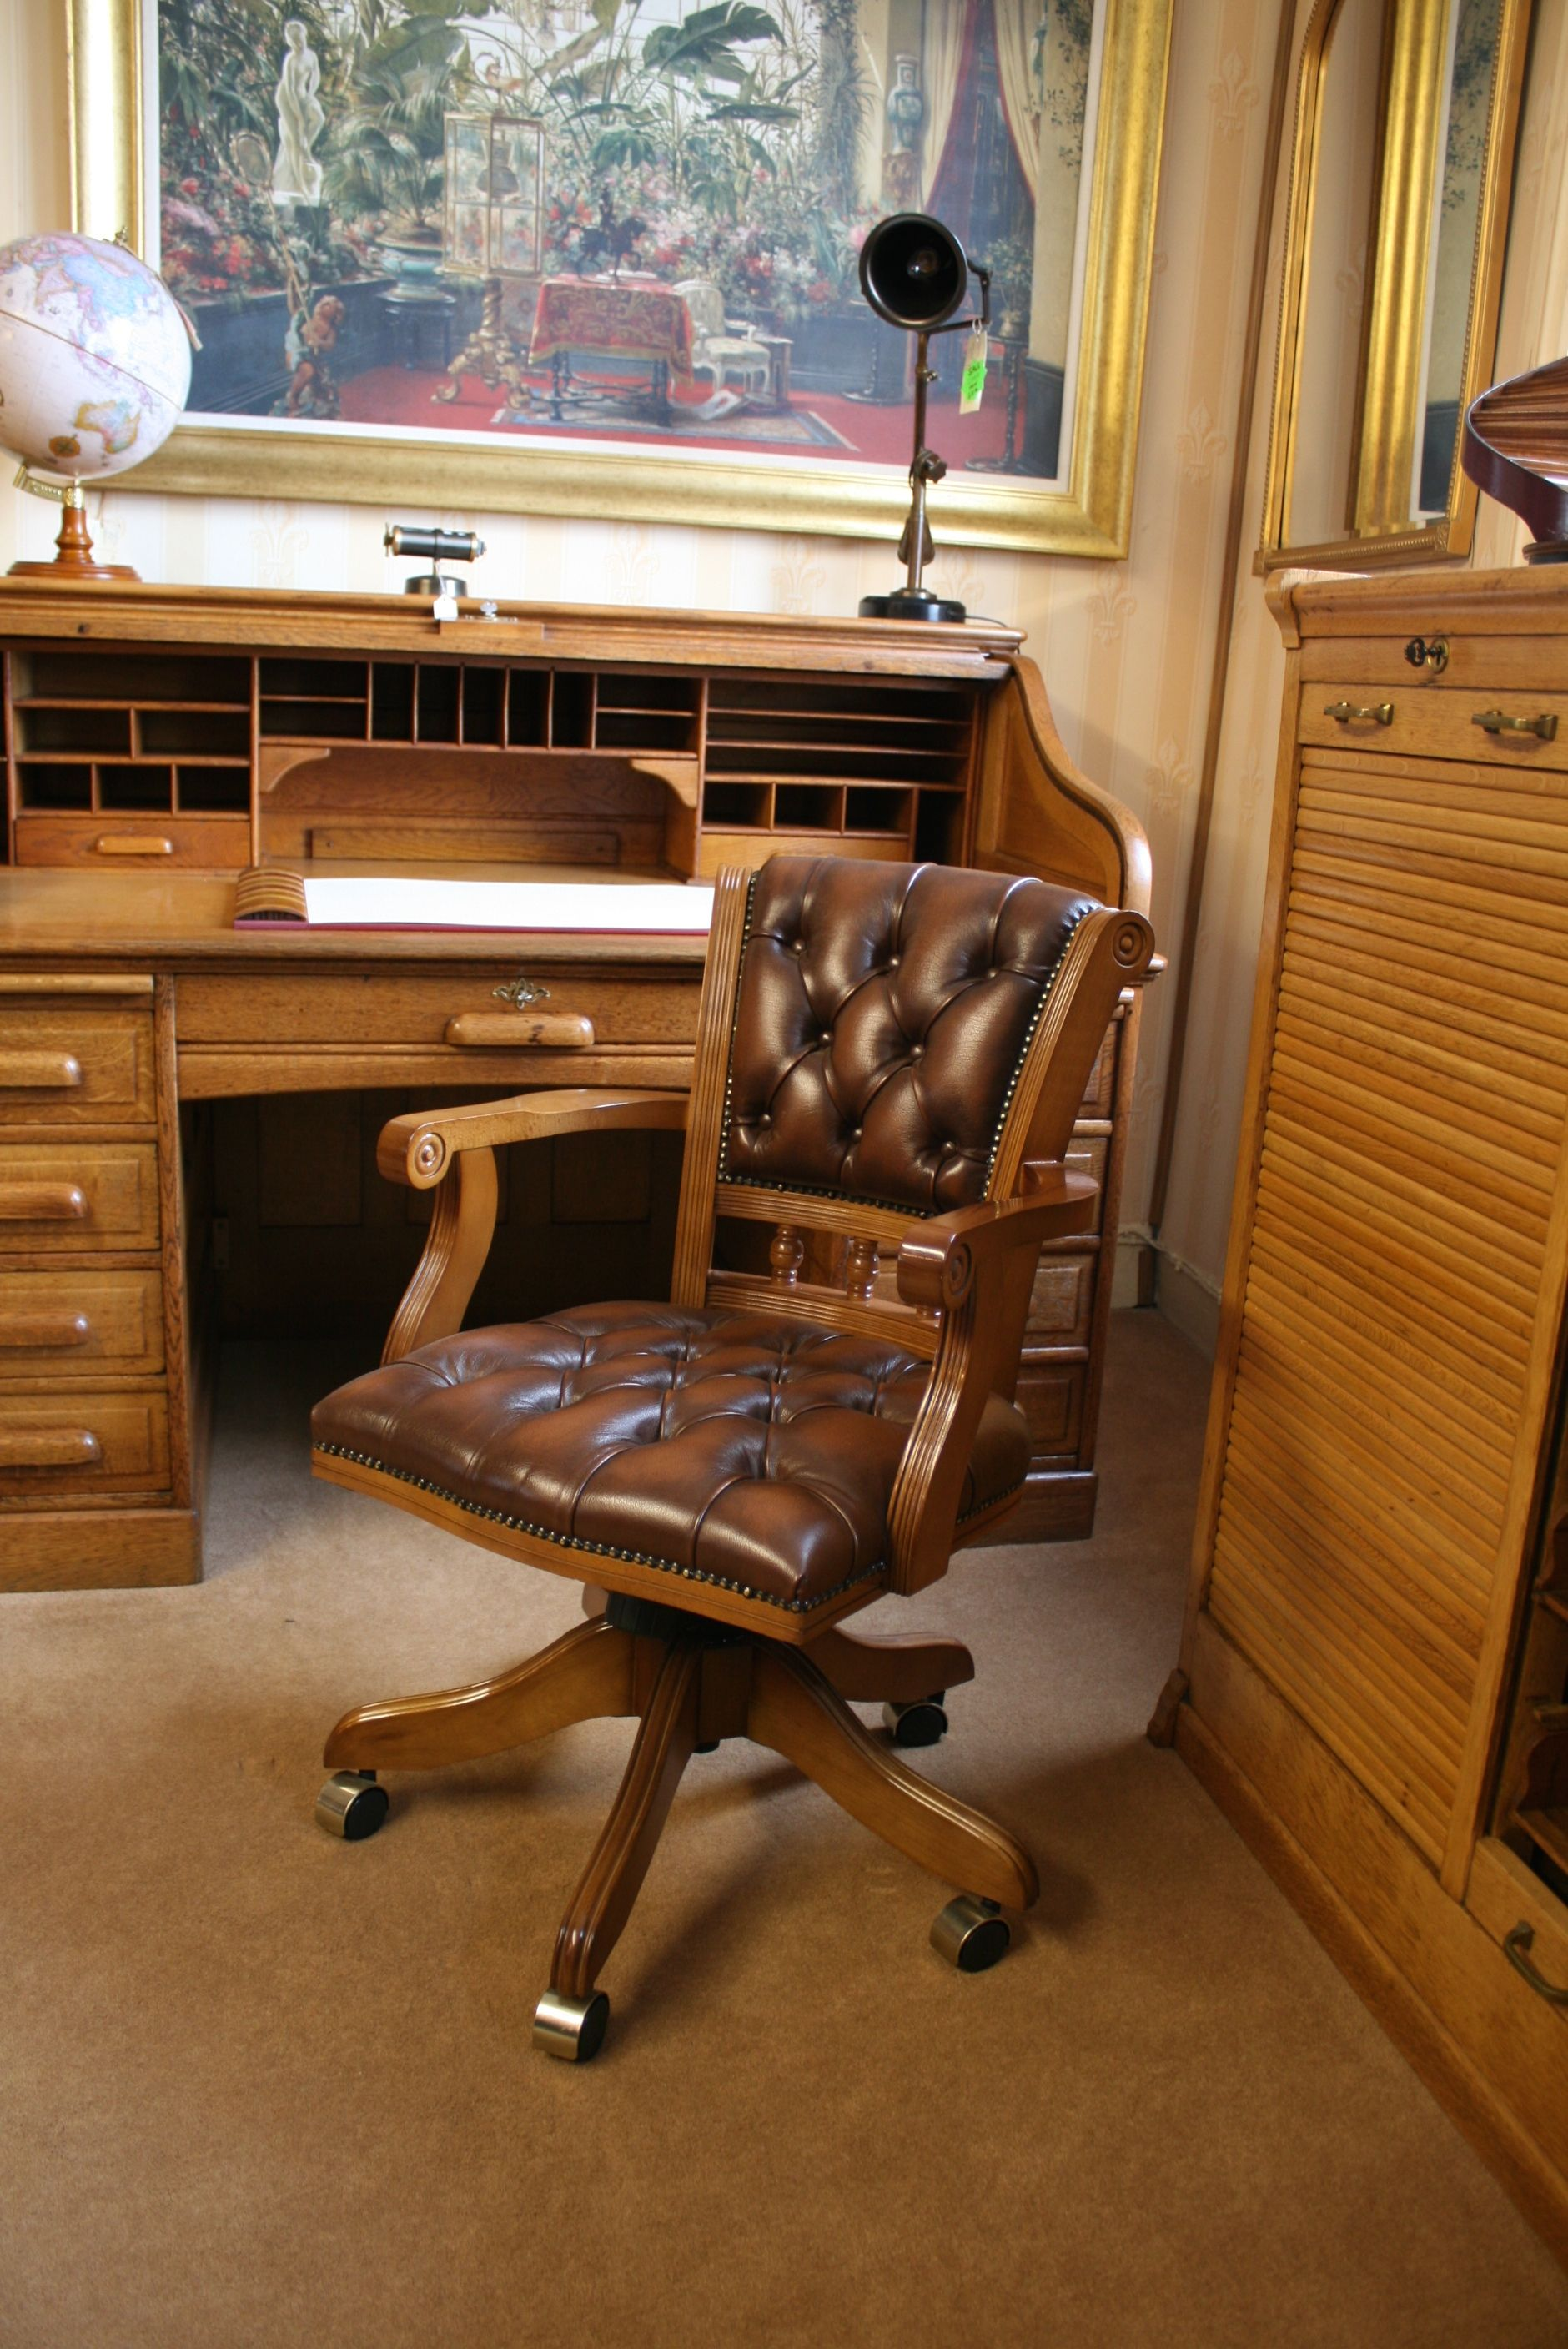 Viscount Swivel Desk Chair. Tan Leather Upholstery